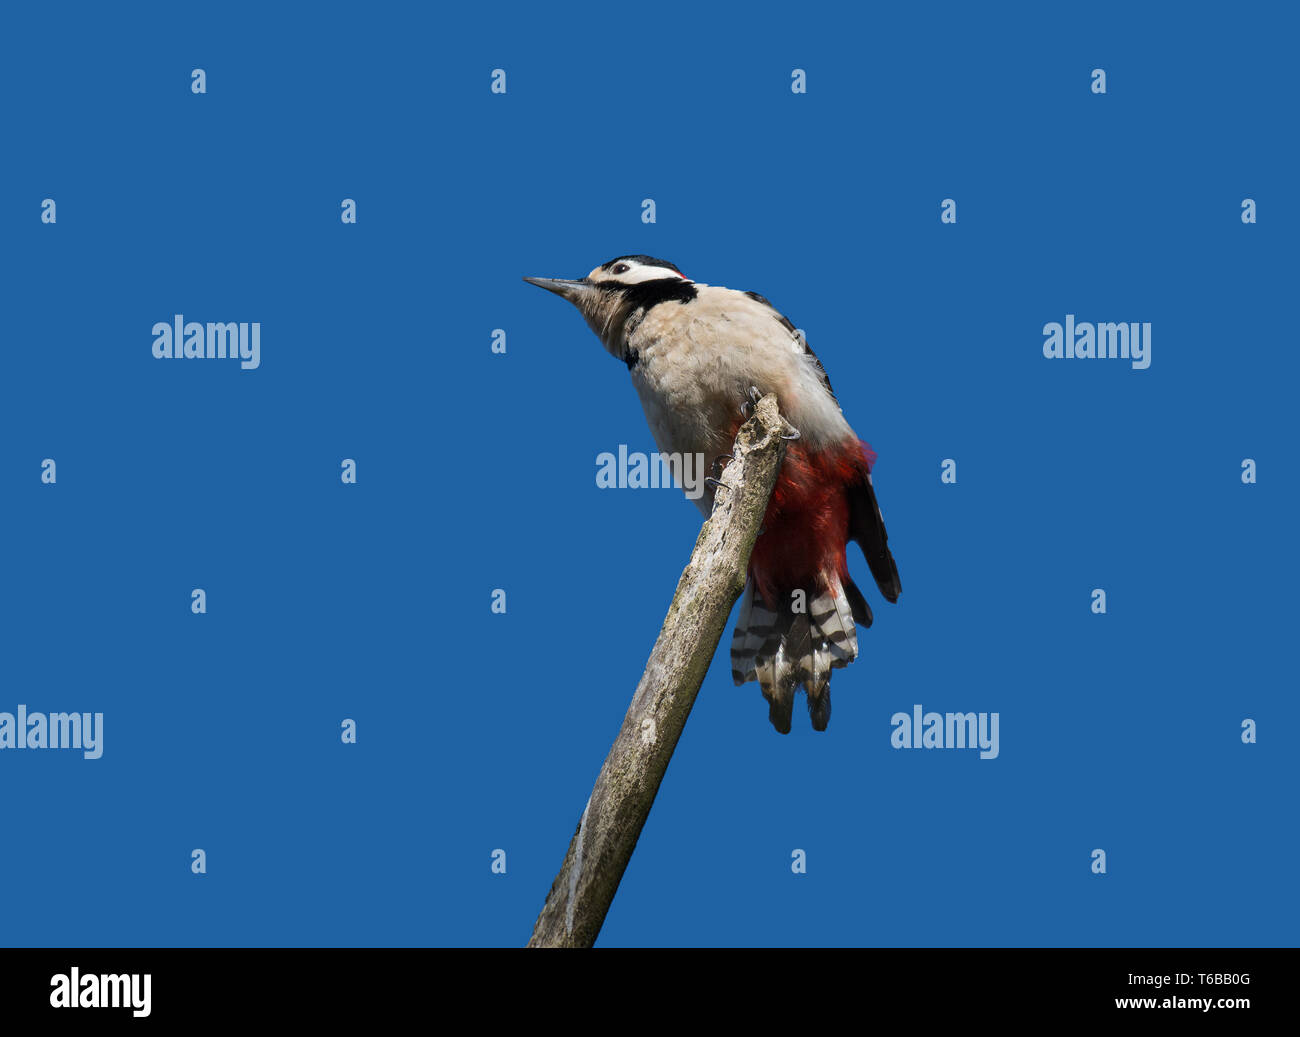 Great spotted Woodpecker, Dendrocopos major, on perch, viewed from below against blue sky, Lancashire, UK - Stock Image